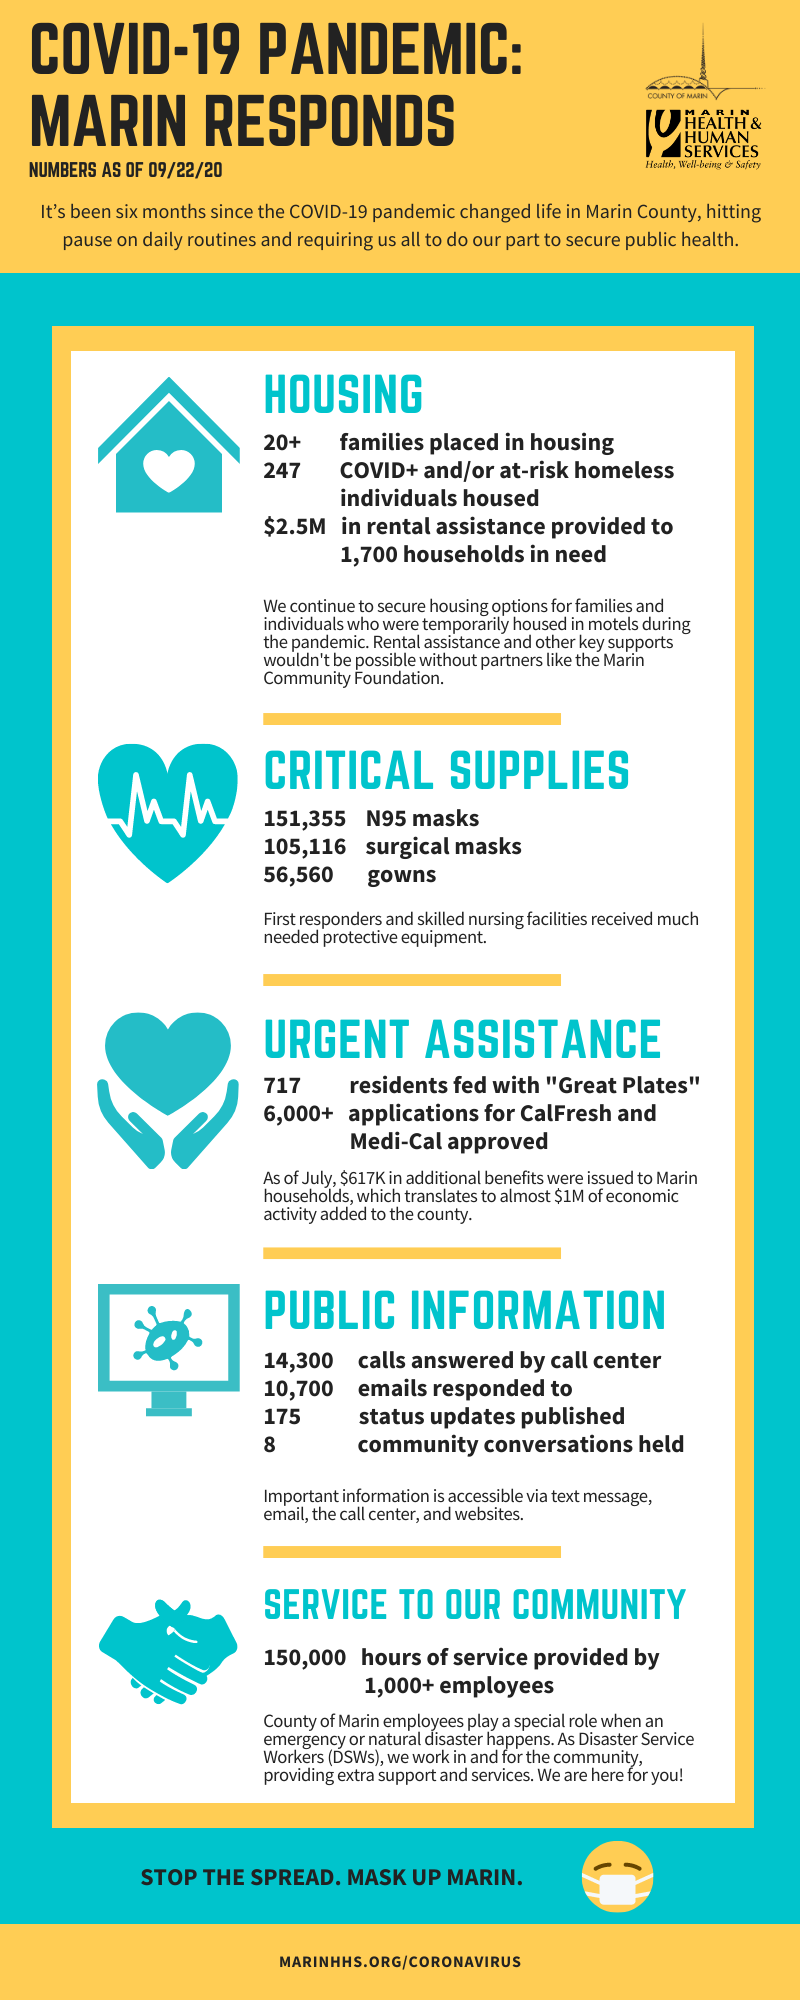 Infographic describing areas of Marin County's response.  Areas include housing support, rental assistance, masks and personal protective equipment distribution, food assistance, public information, and hours of service.